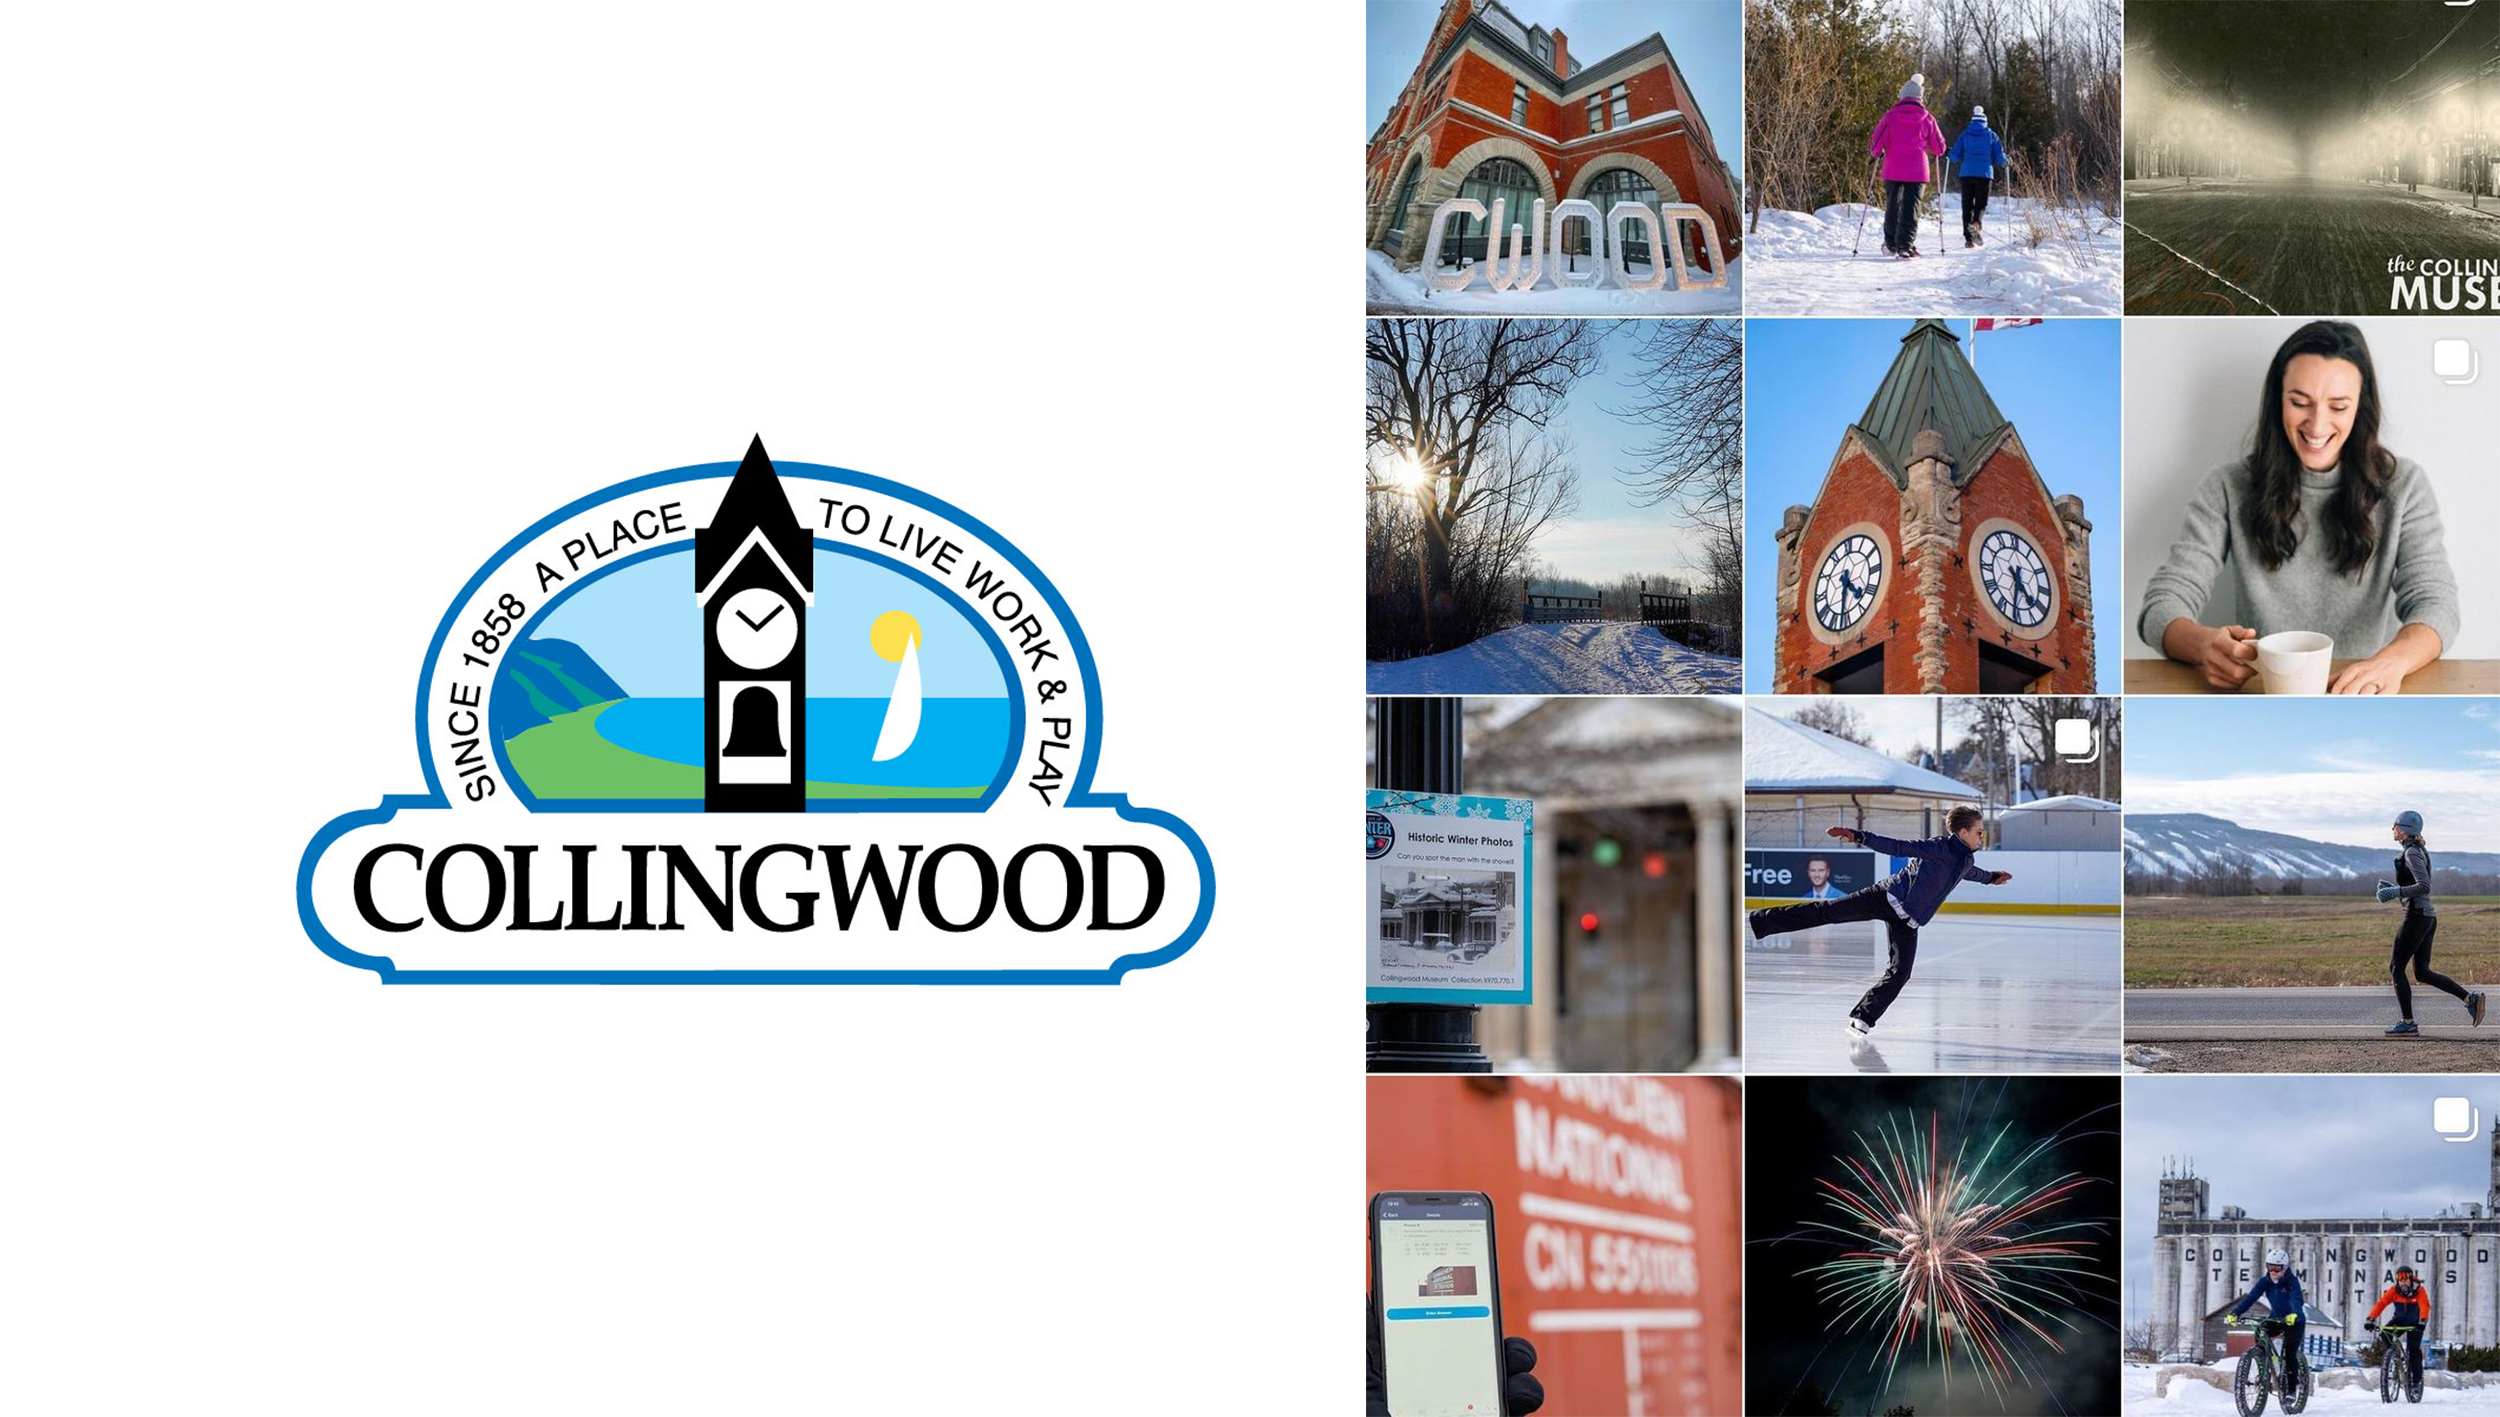 Town of Collingwood logo and Instagram screen shot